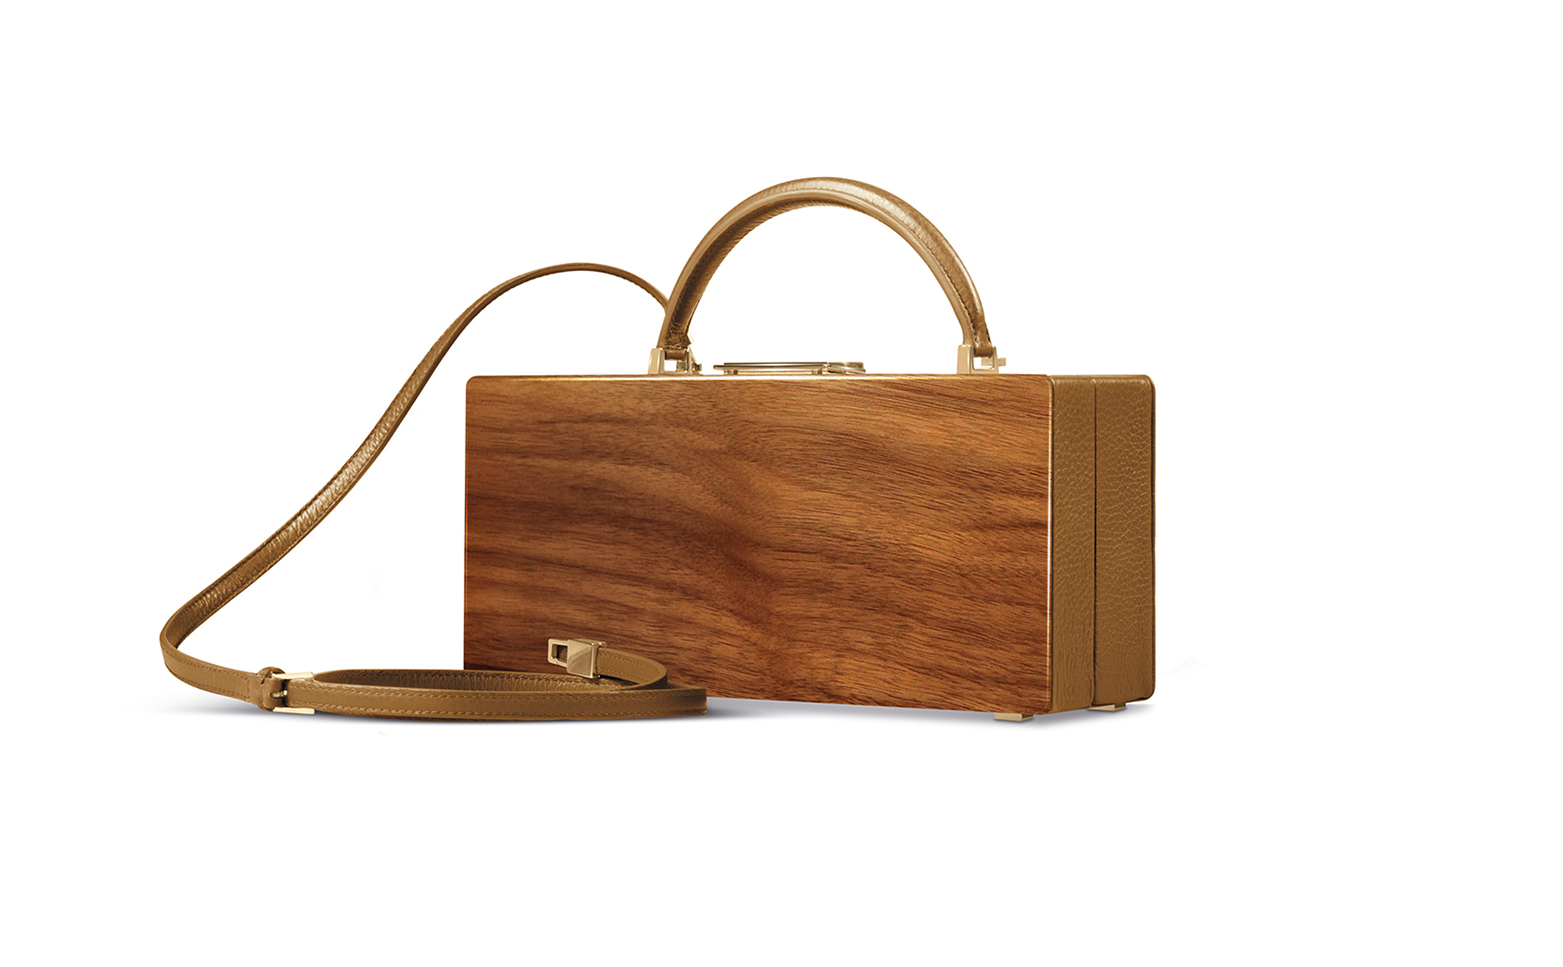 KS Walnut - Learn about all styles of our KS walnut handbags.